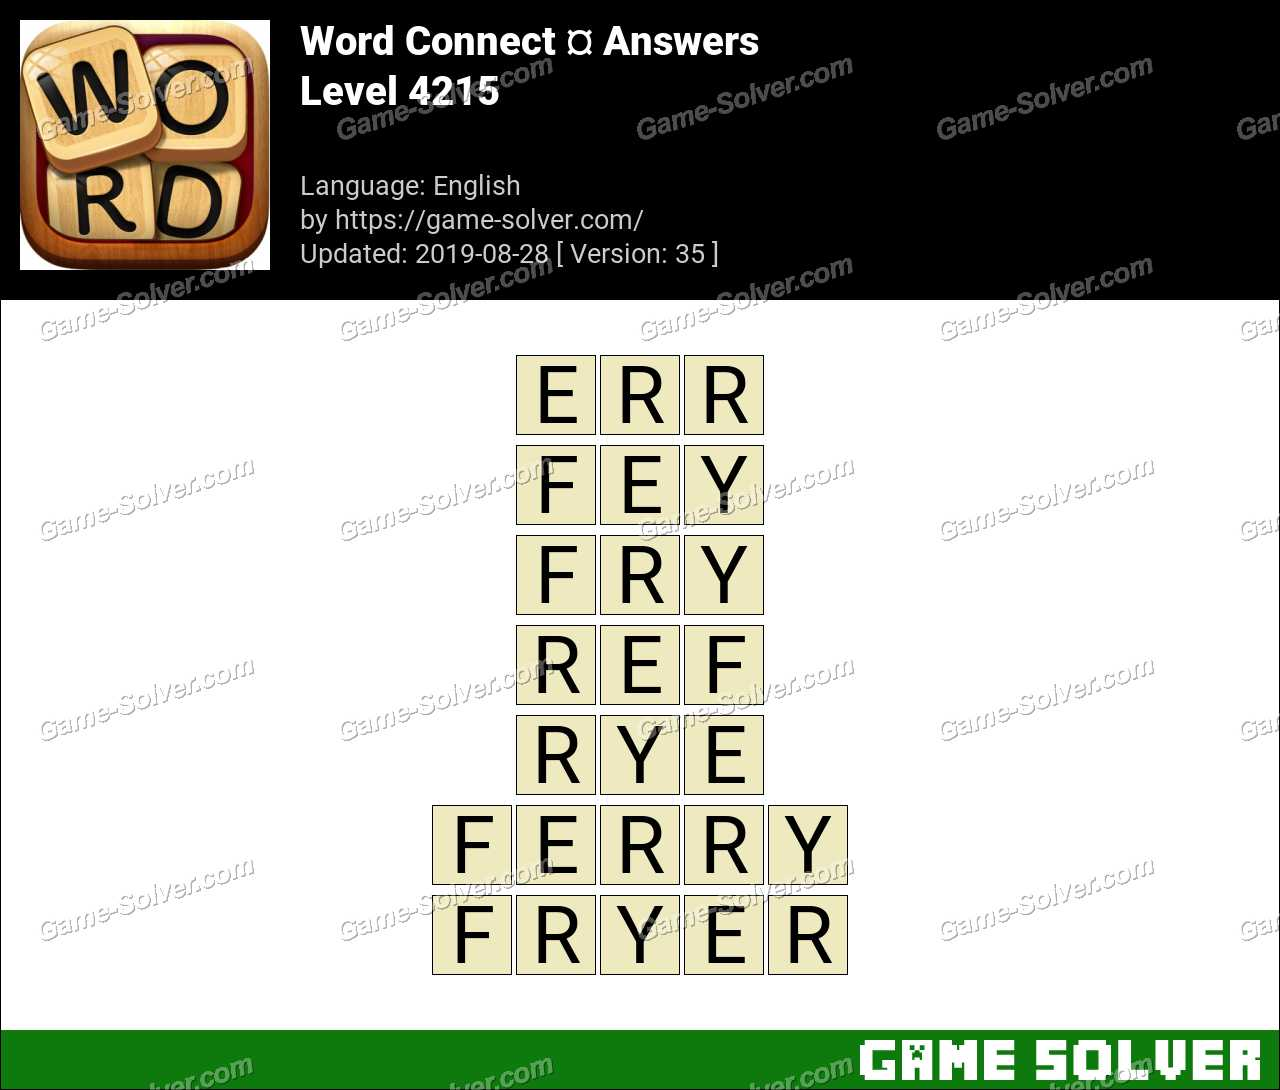 Word Connect Level 4215 Answers